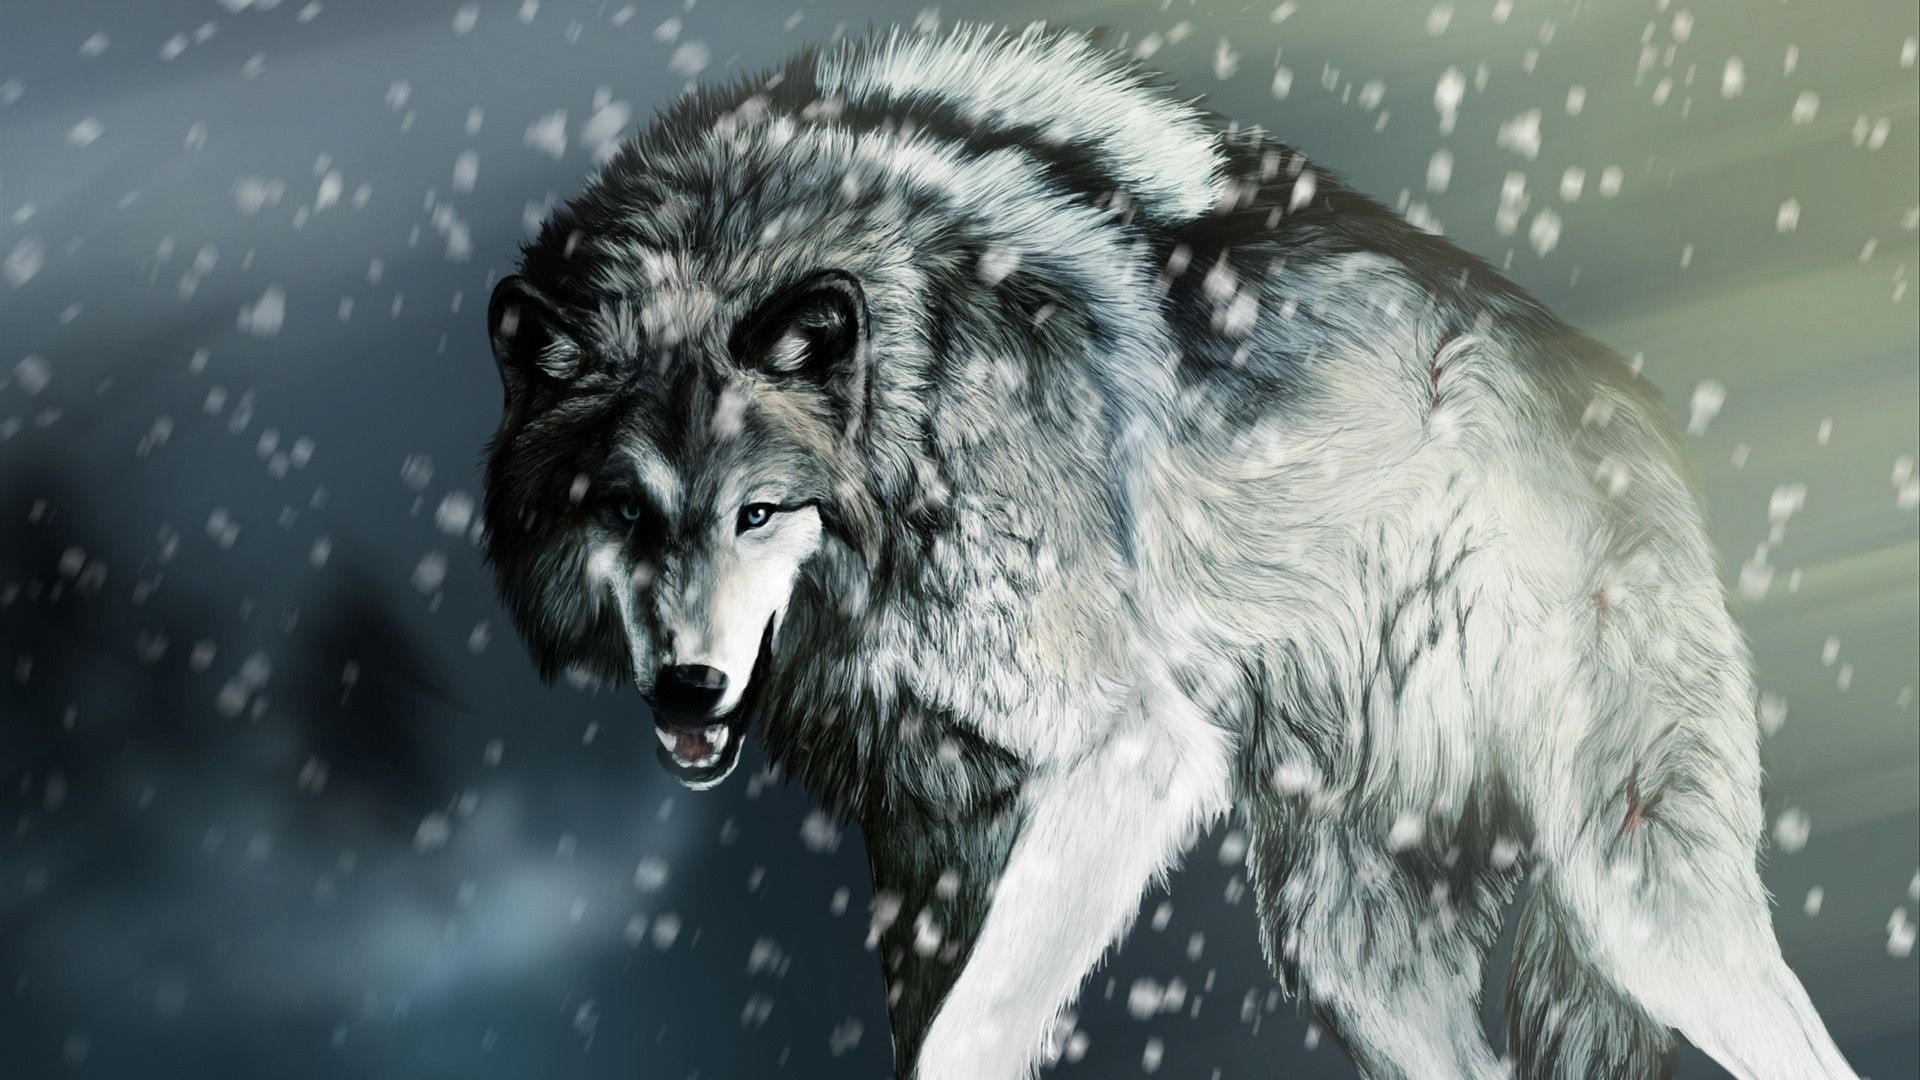 Wolf Wallpaper HD 1 Download Free Amazing Full Backgrounds For